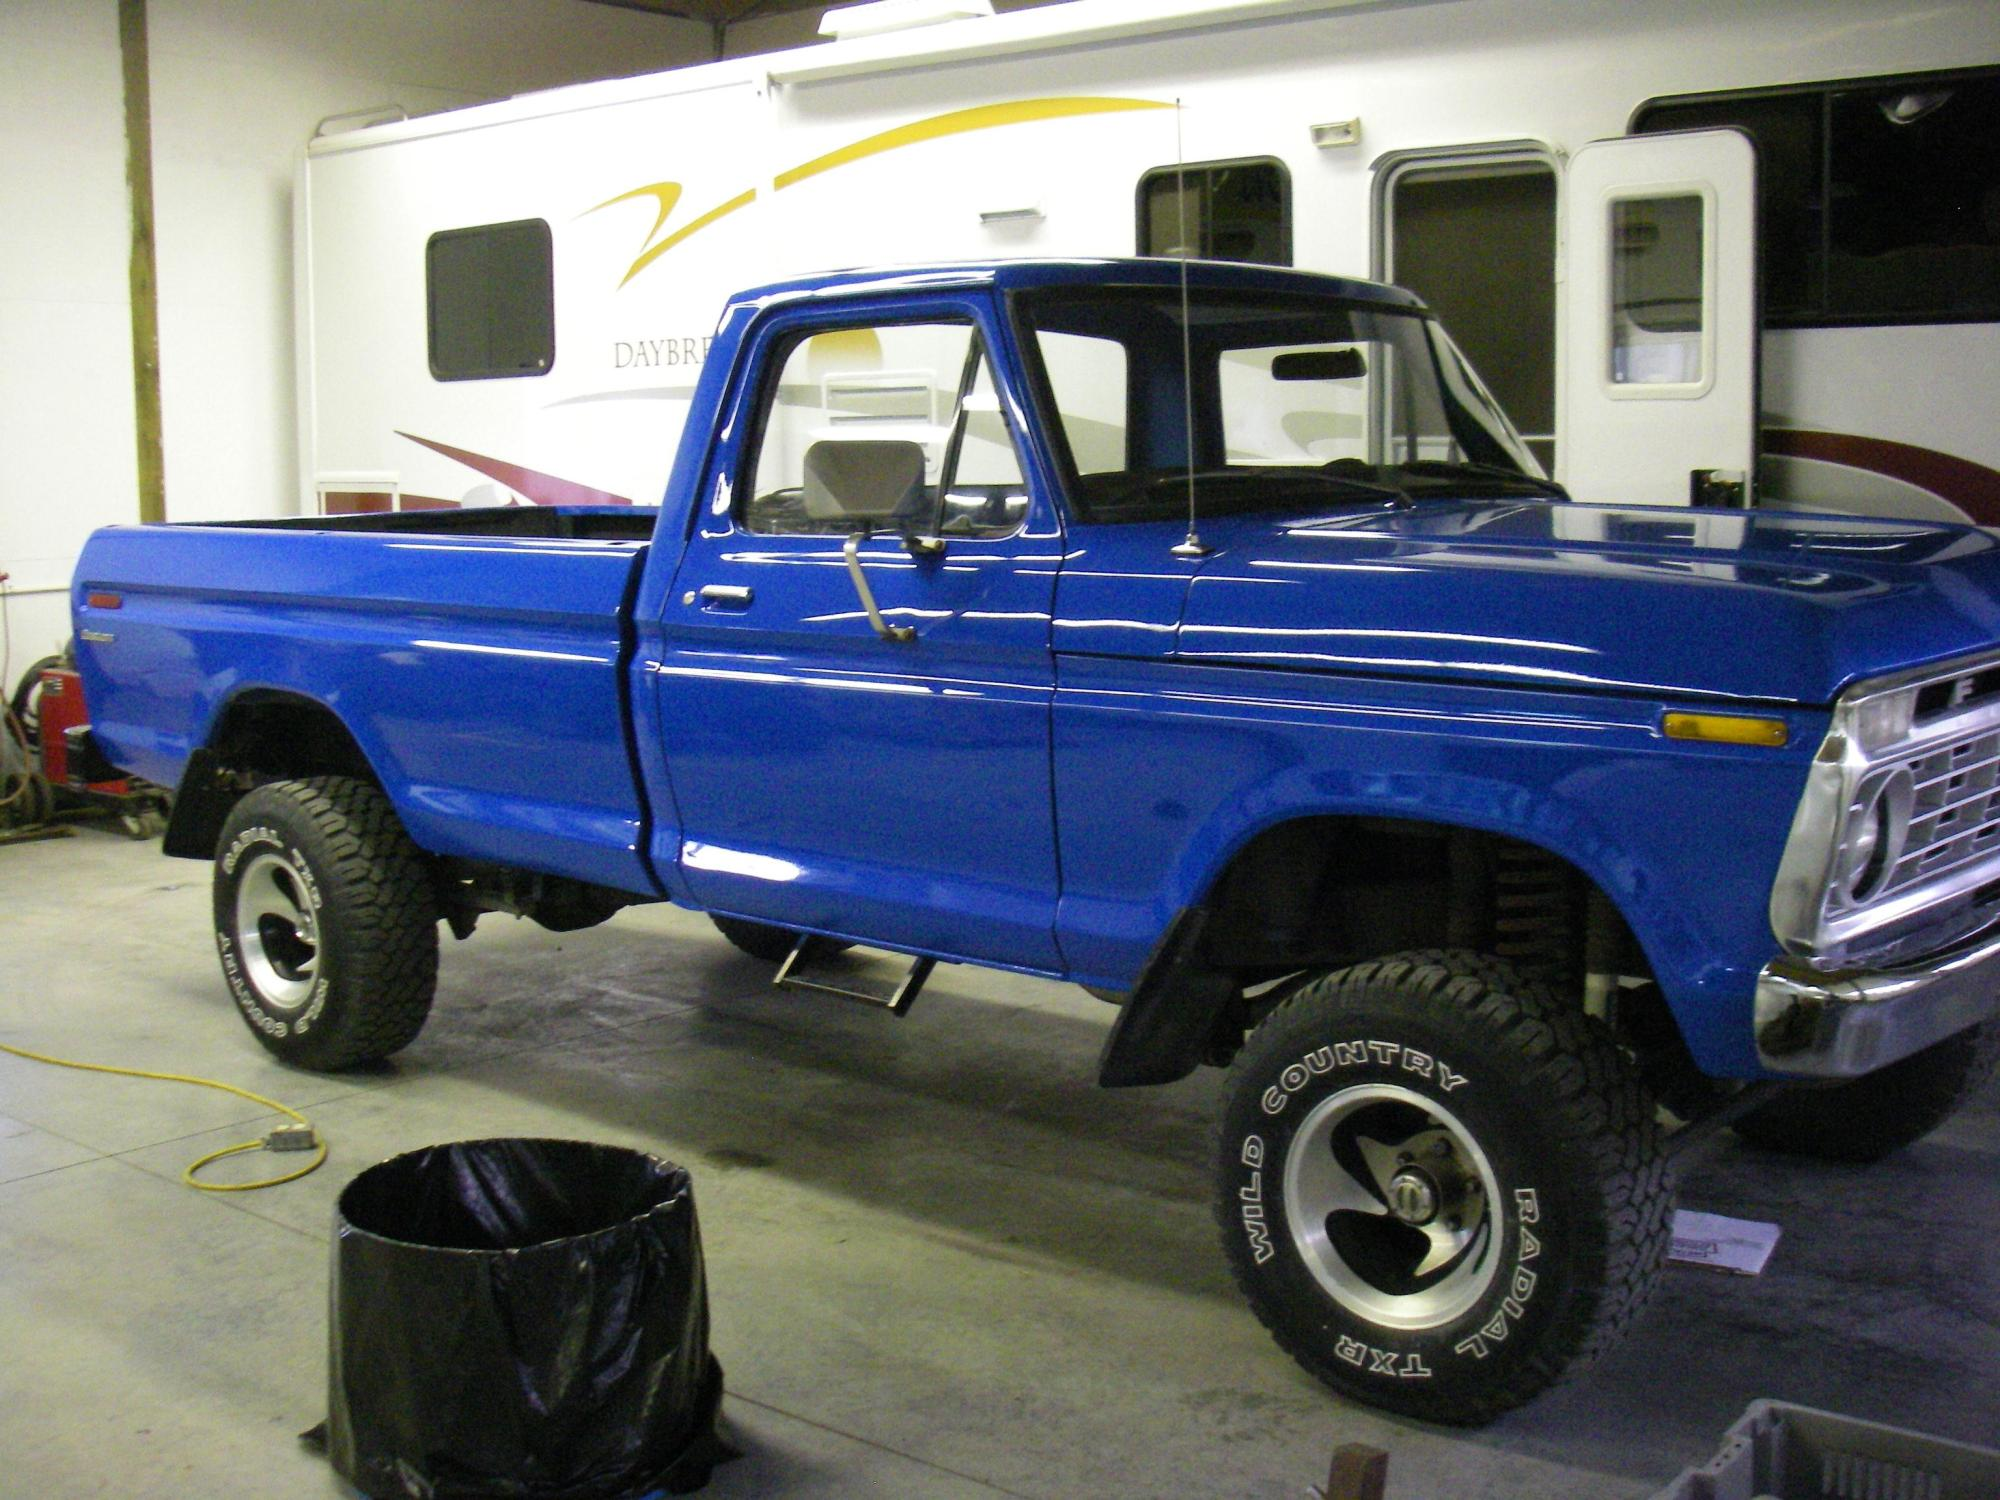 hight resolution of chevywillys 1973 ford f150 regular cab 38958944001 original